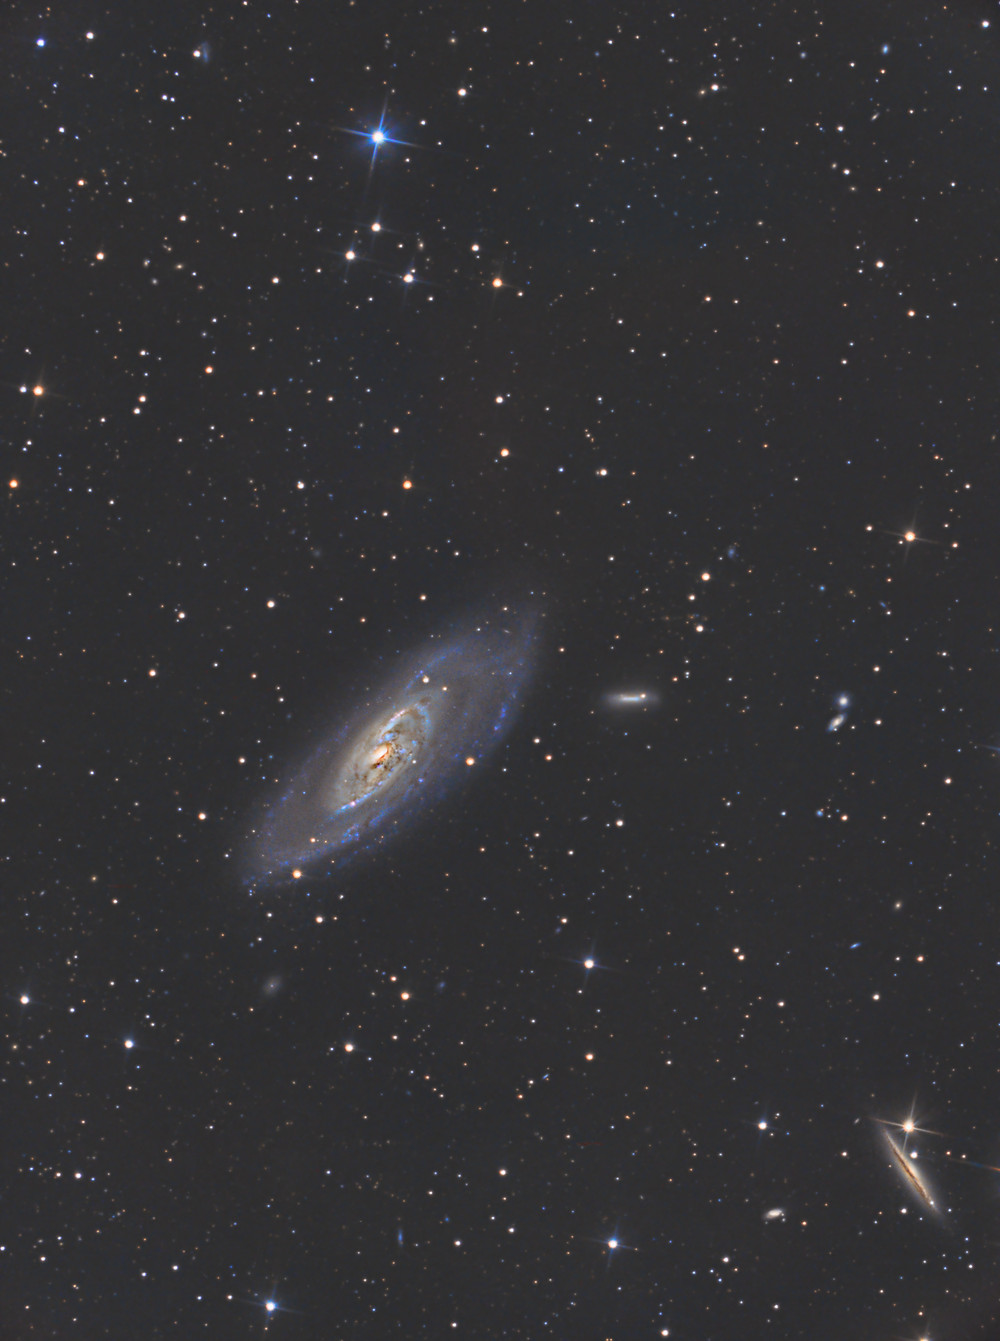 """Astrophotography of Messier 106, an intermediate spiral galaxy in the constellation of Canes Venatici. Captured with an ASI 1600MM camera, ASIair, and Orion 8"""" Astrograph telescope"""